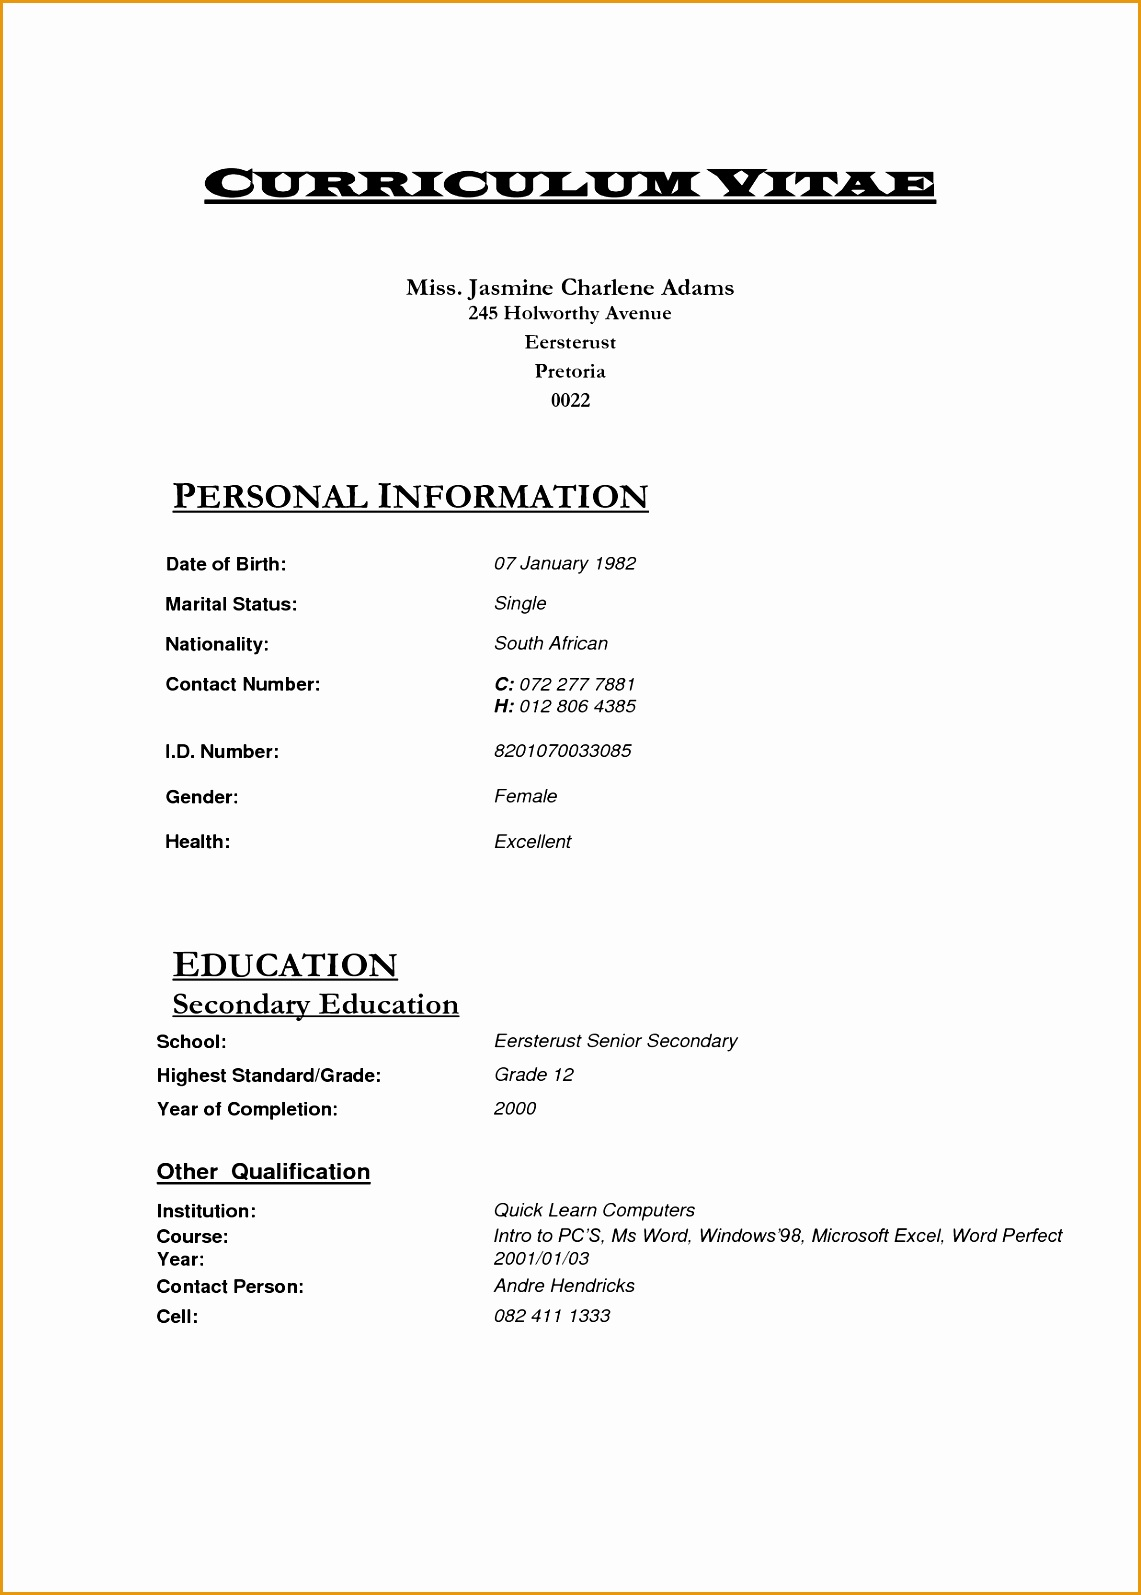 Resume And Cv Templates 5 Nursing Curriculum Vitae Templates Free Samples